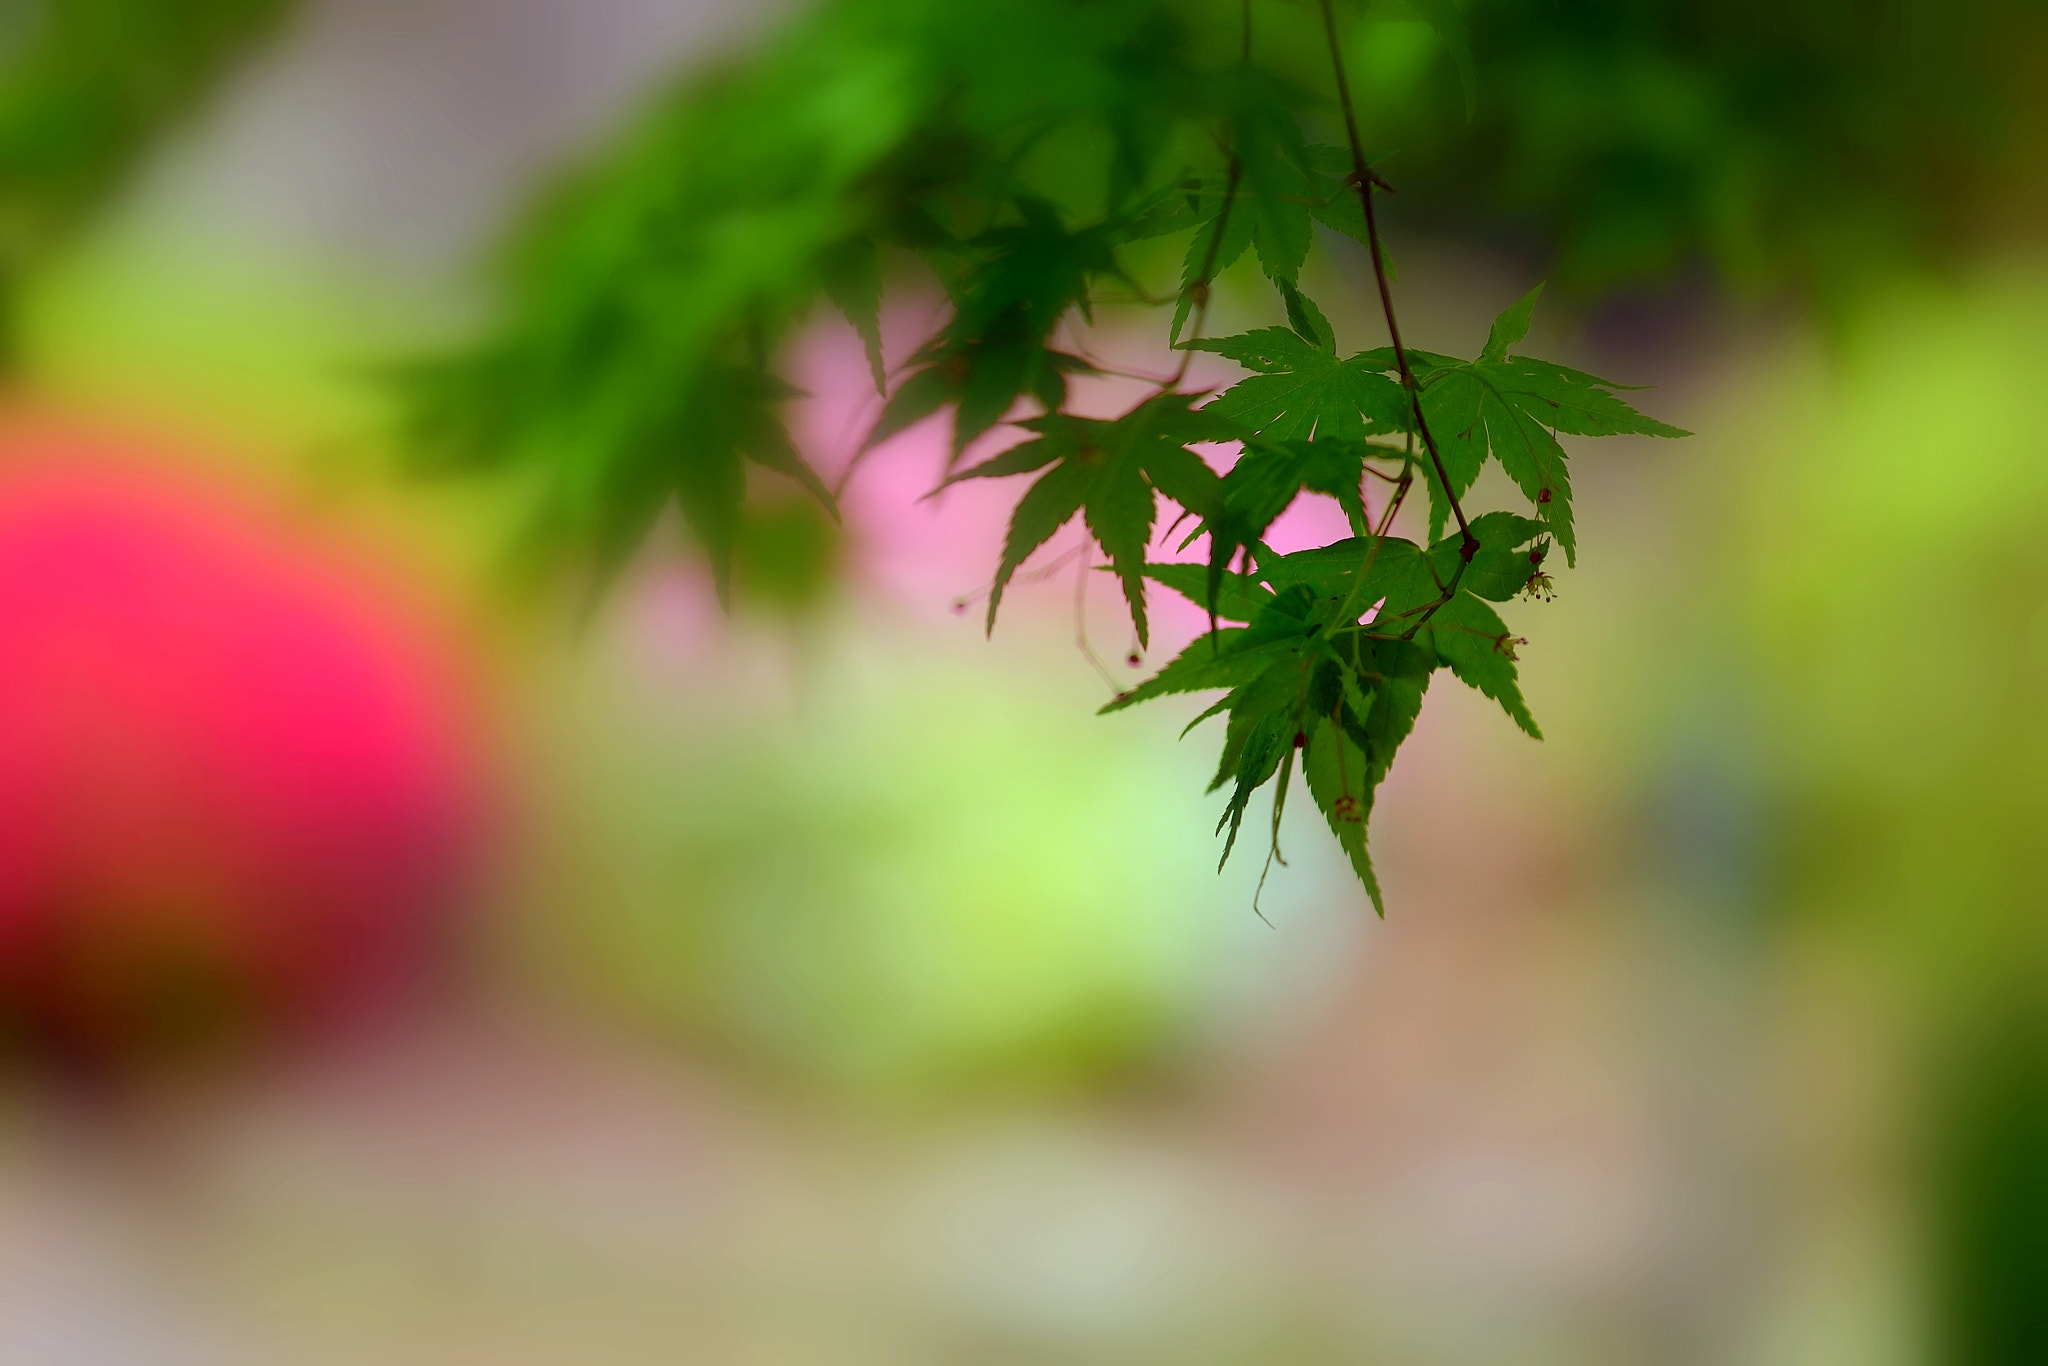 Photograph The season of fresh green by yoshi 馬場 on 500px